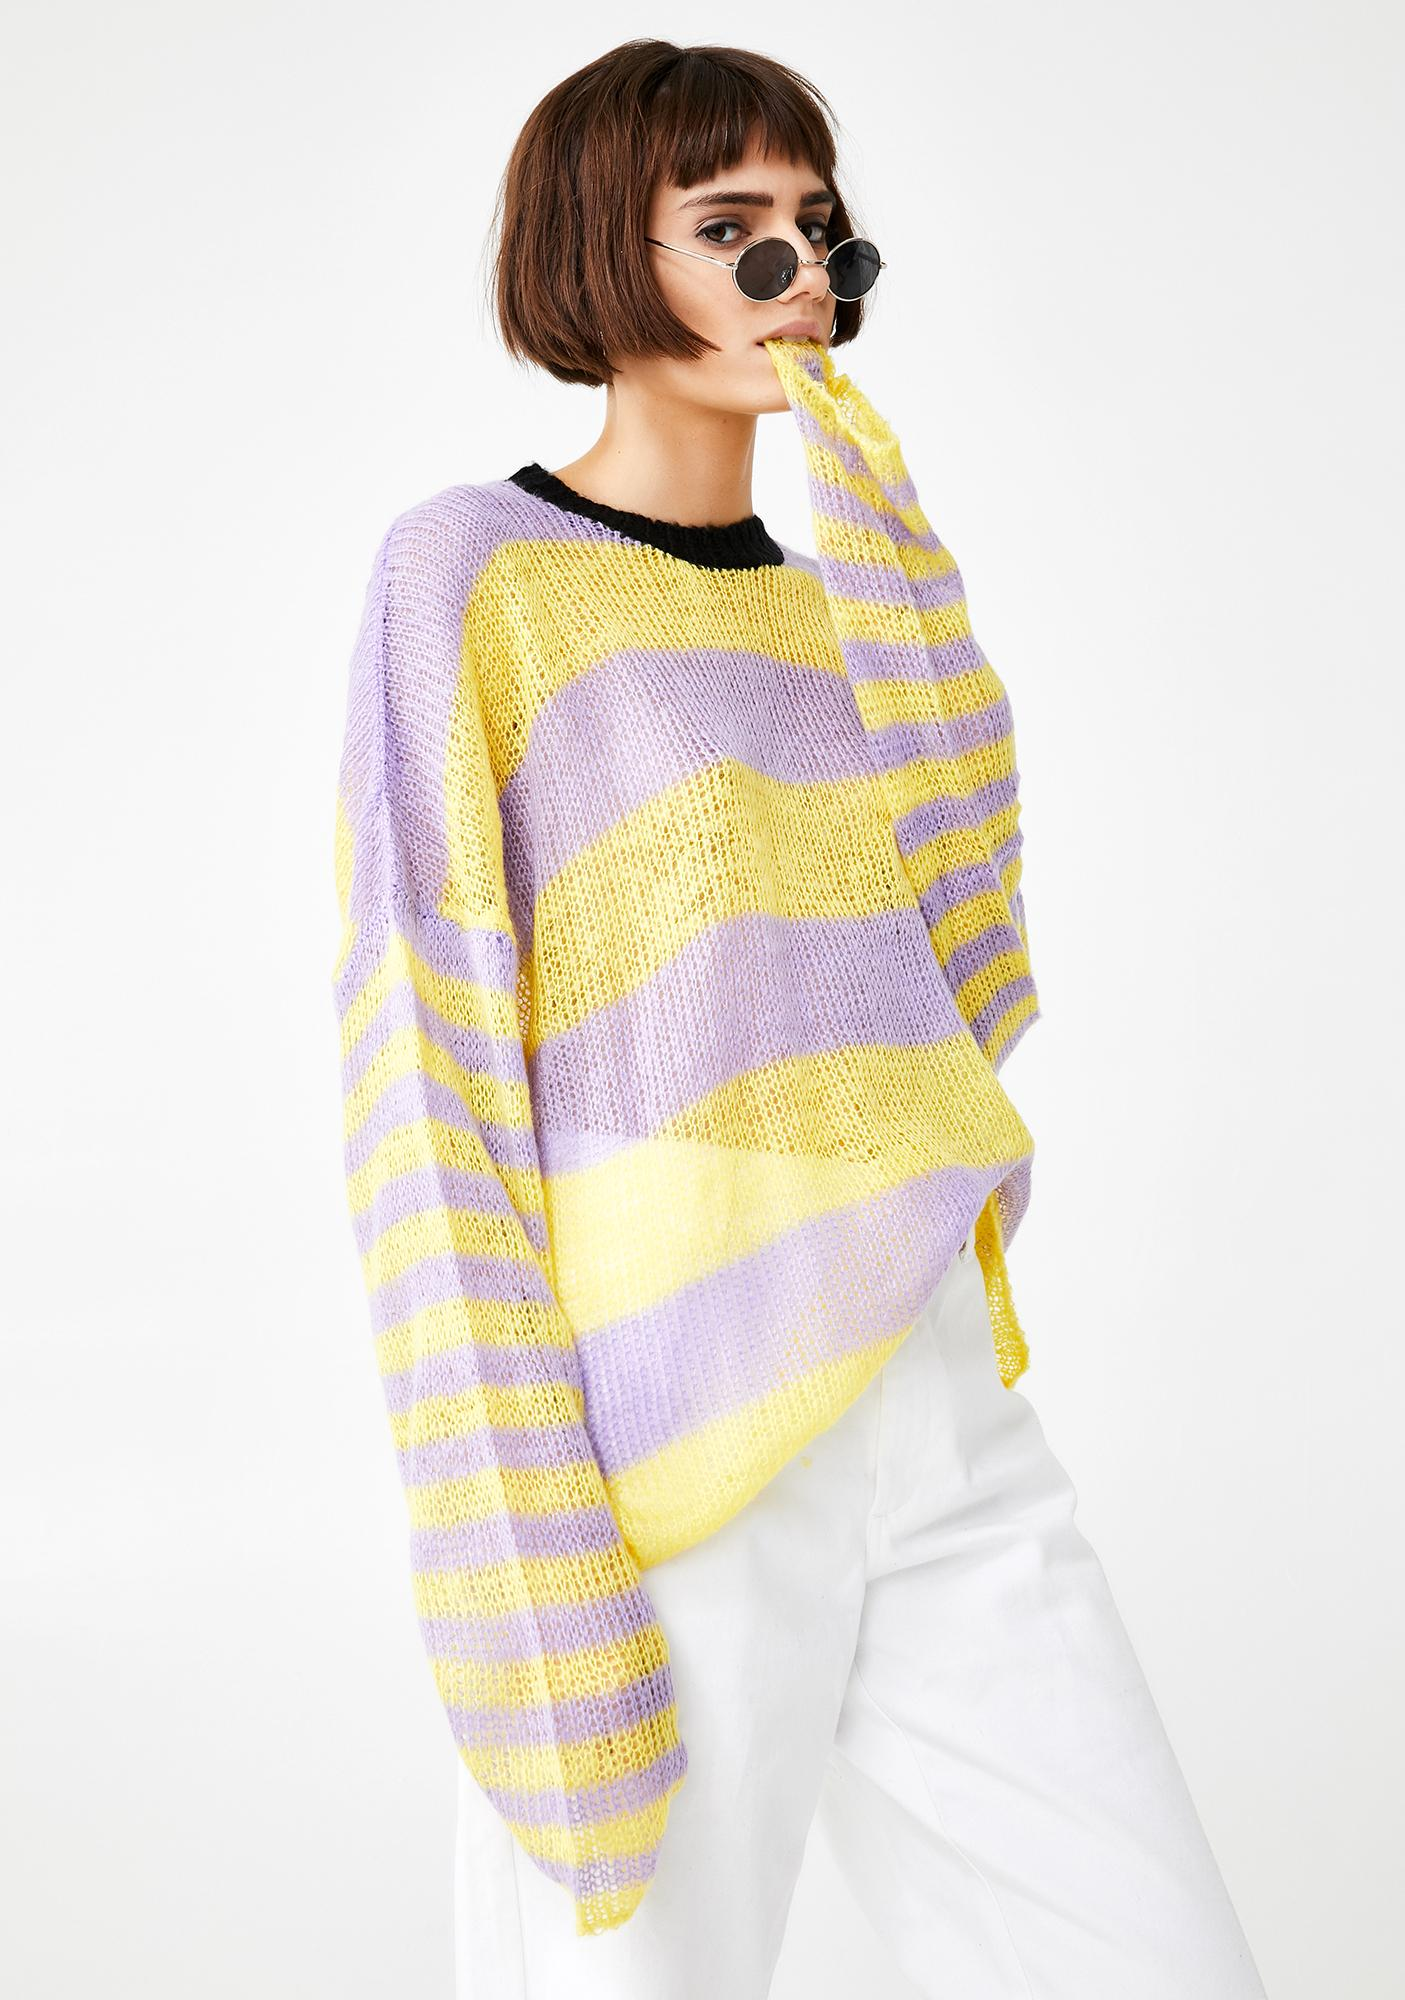 The Ragged Priest Turbo Knit Sweater